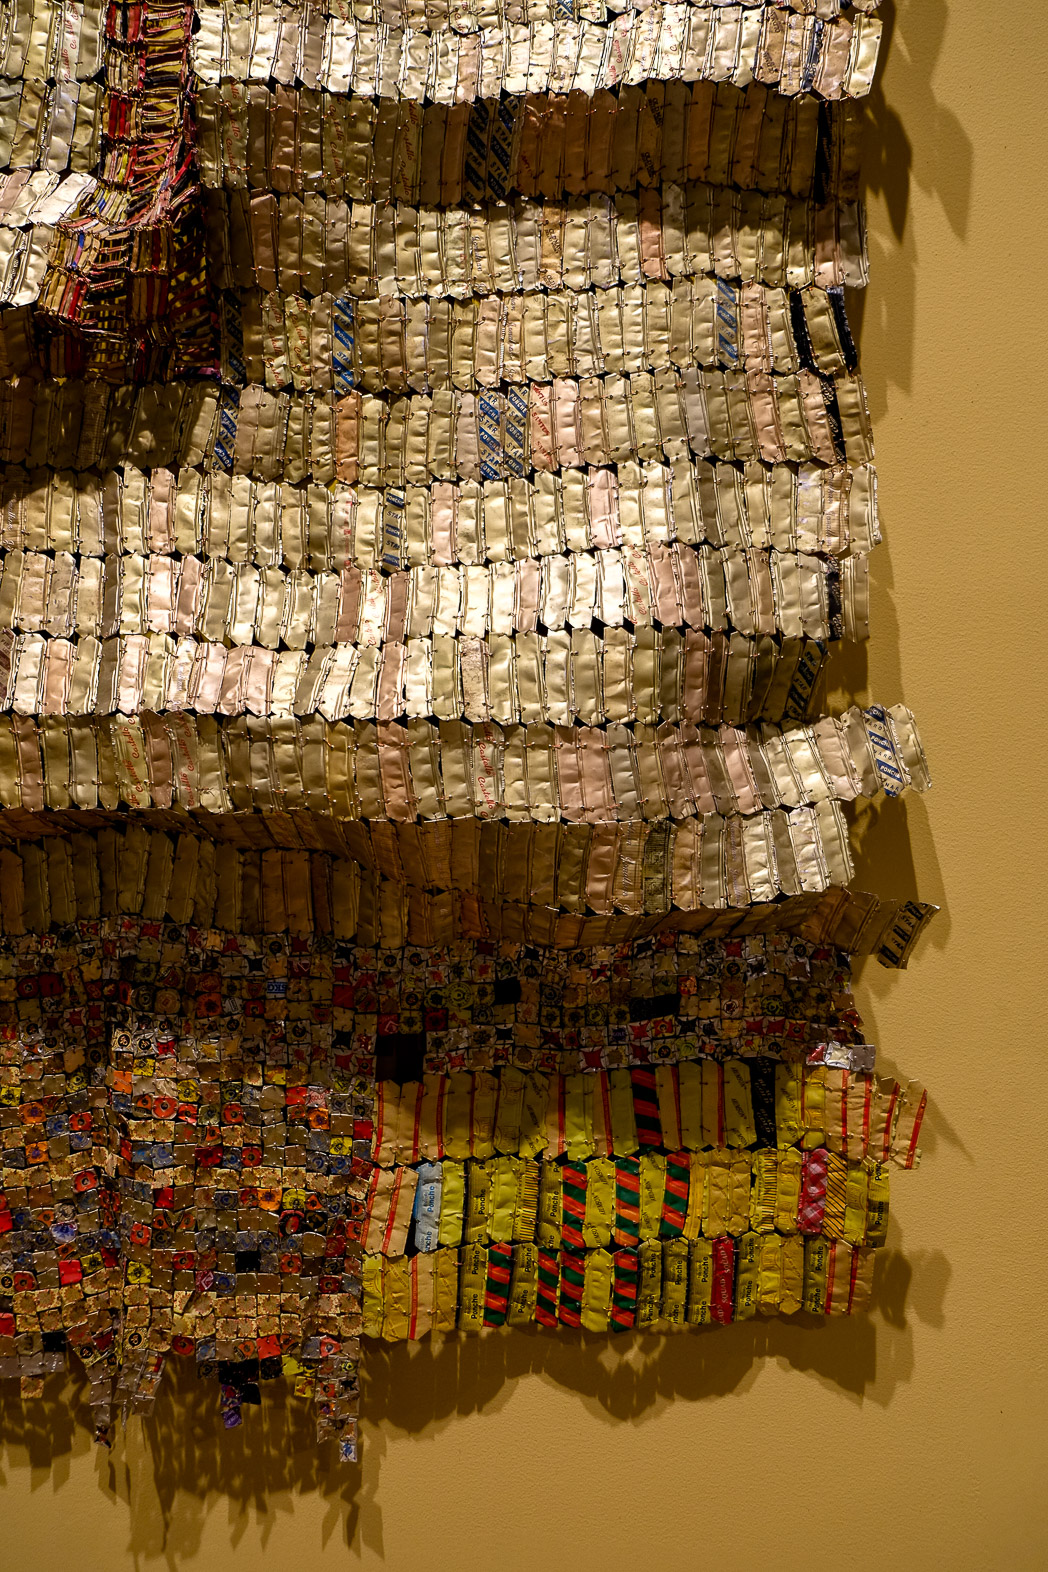 photograph of a detail of the artwork Between Heaven and Earth at the Met, which is made of reclaimed tin cut into mosaic shapes that are then connected together with wire